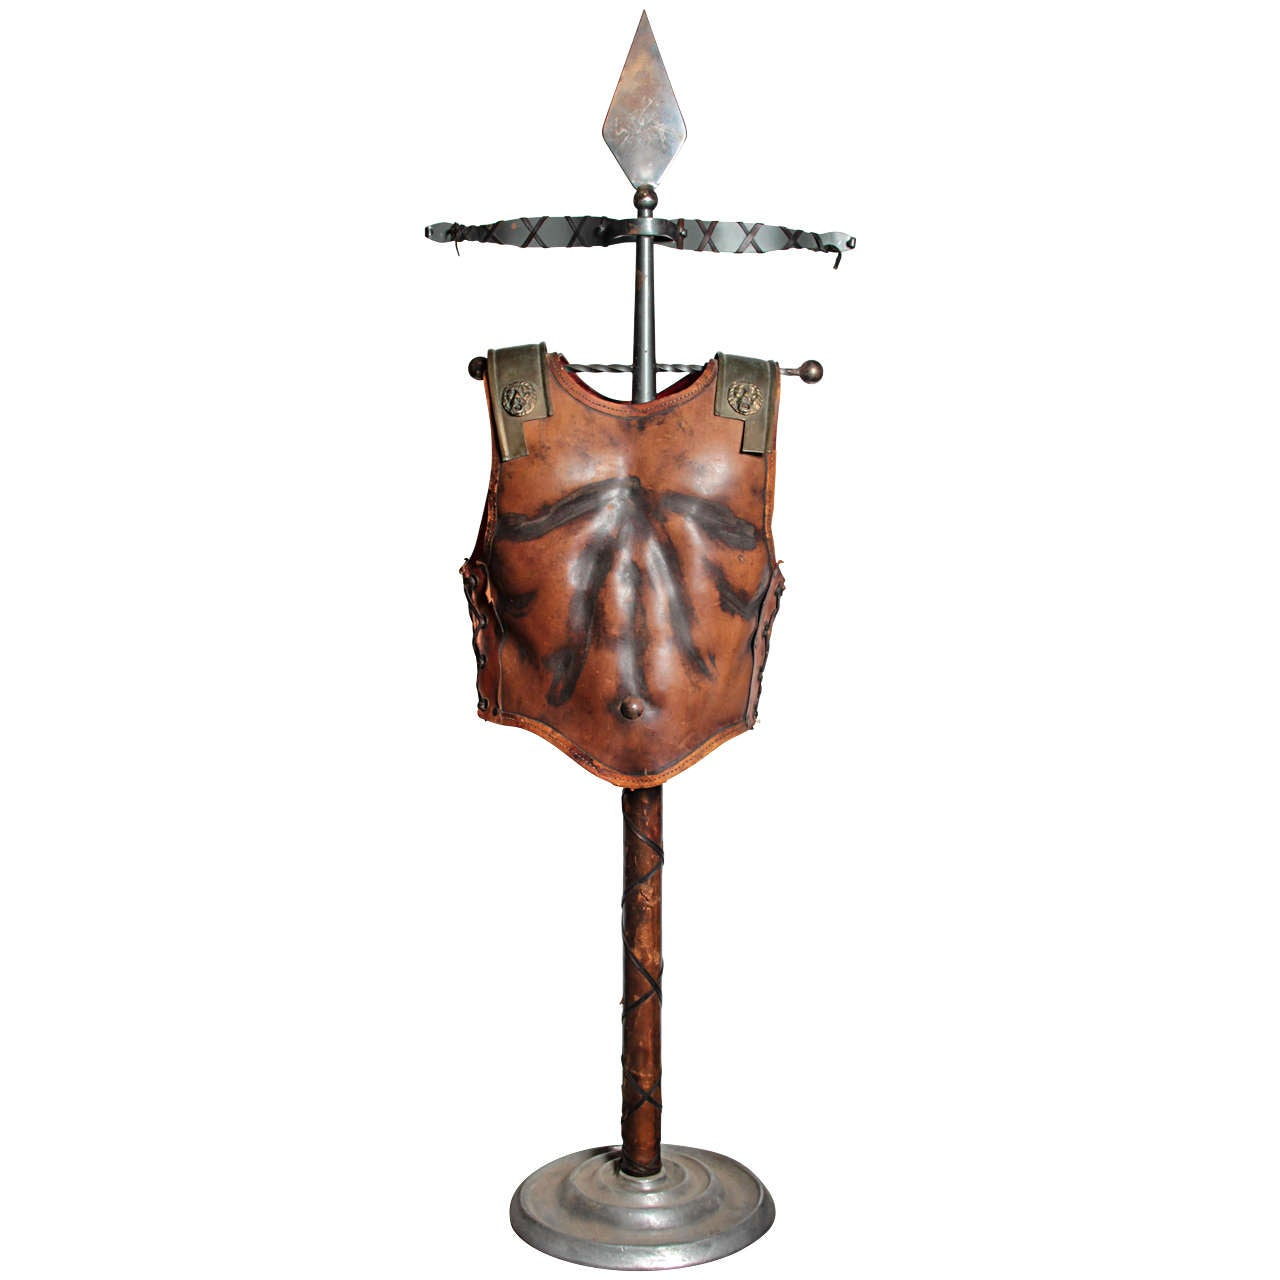 Fabulous Italian 1960s Figural Valet in the Form of a Gladiators Breast Plate For Sale